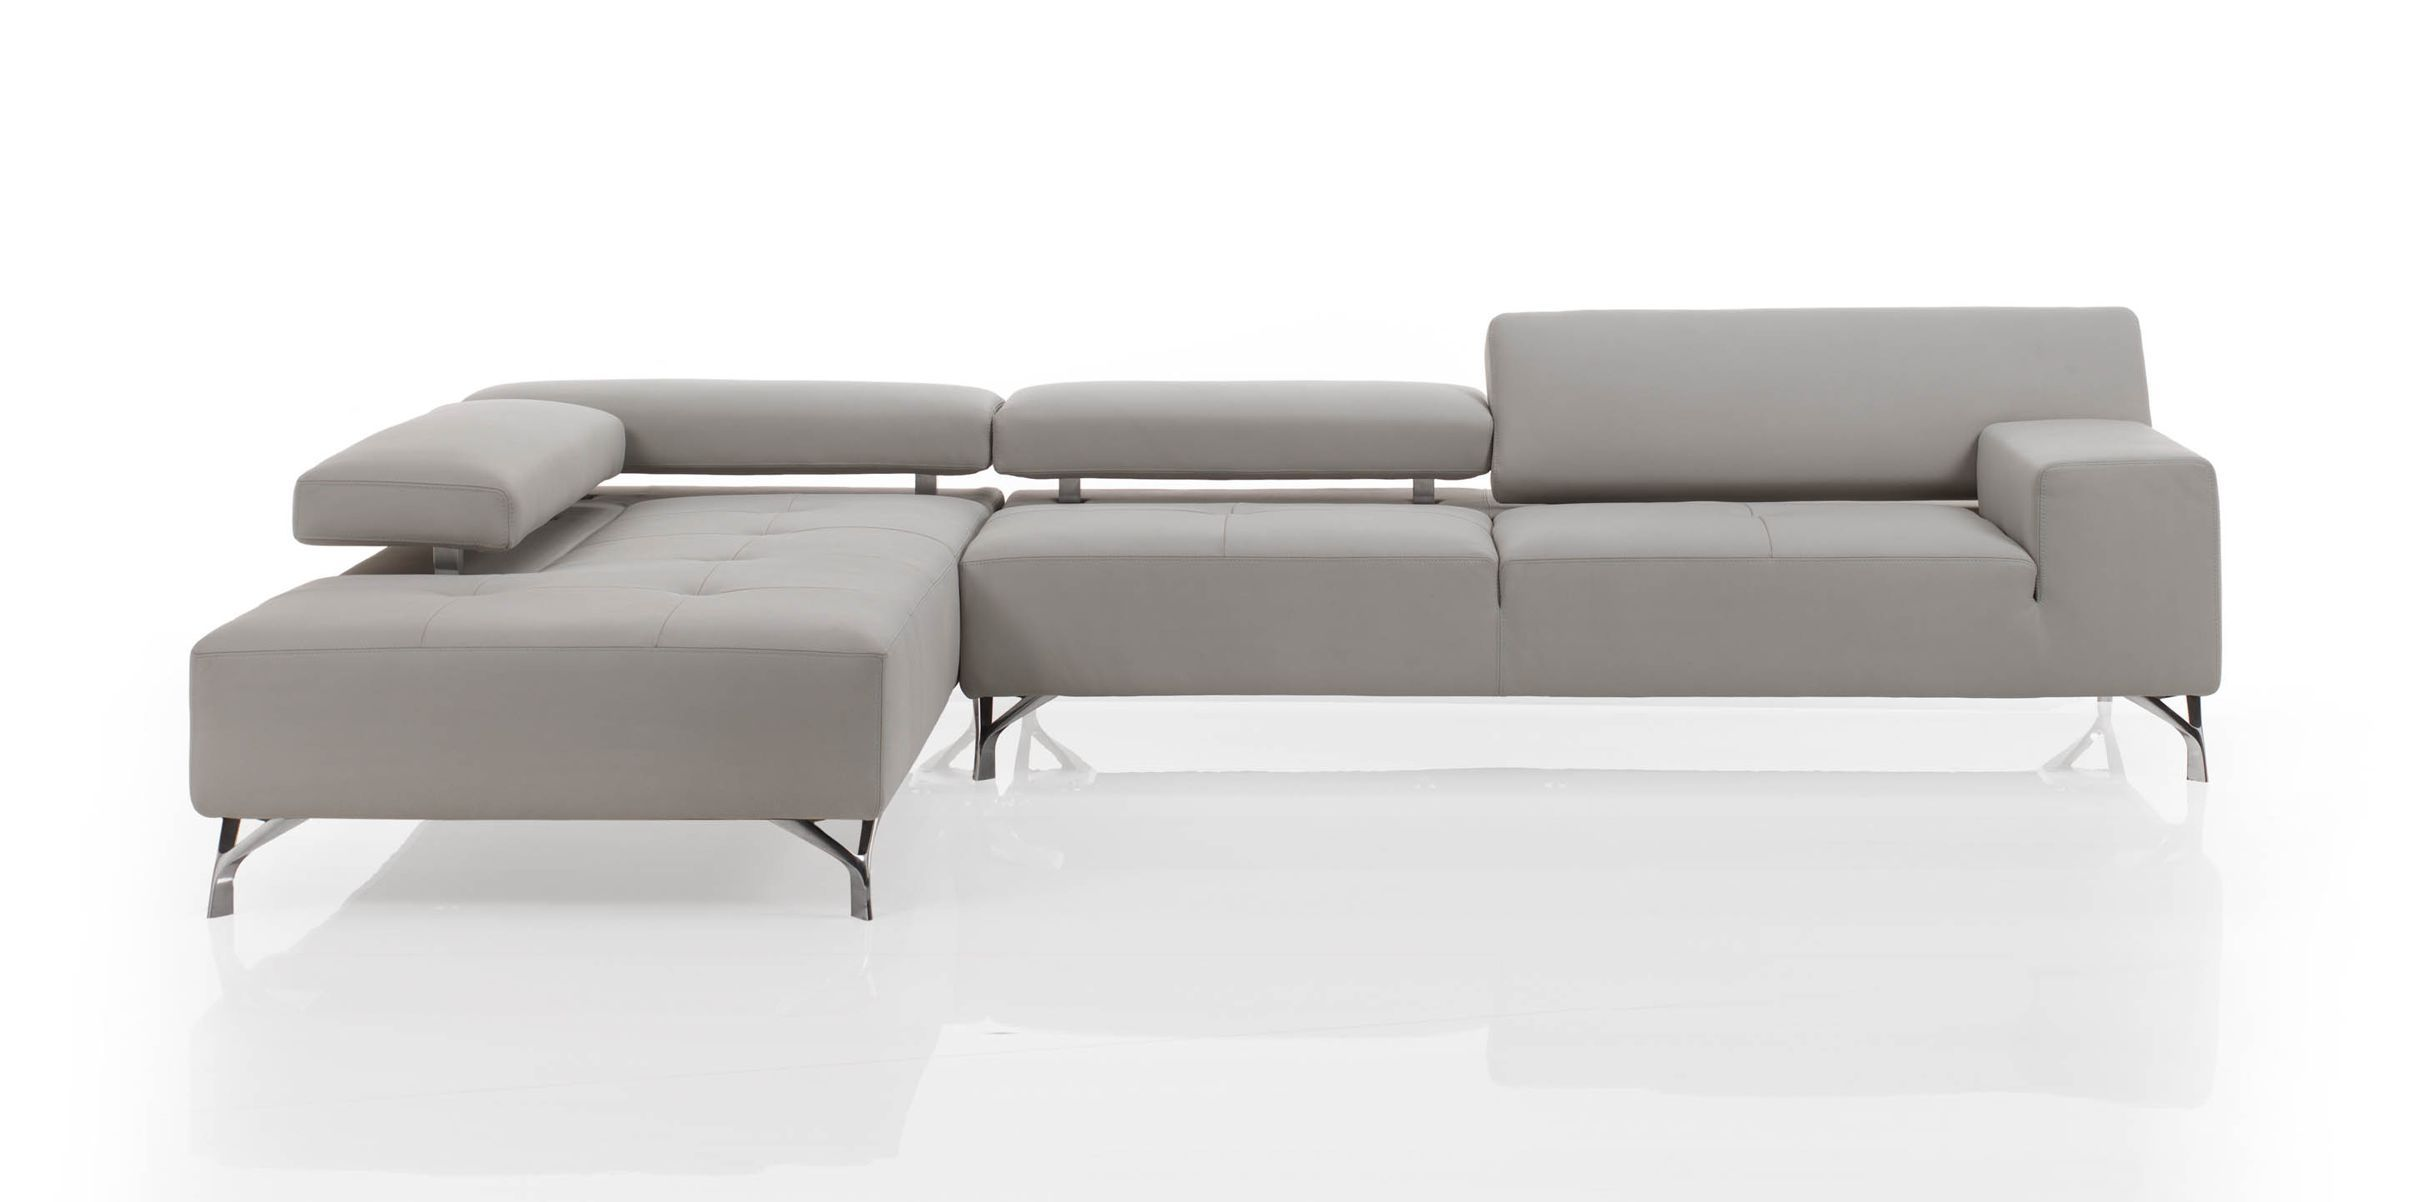 Miami Modern Luxury Sectional Sofa by Cierre Imbottiti ...